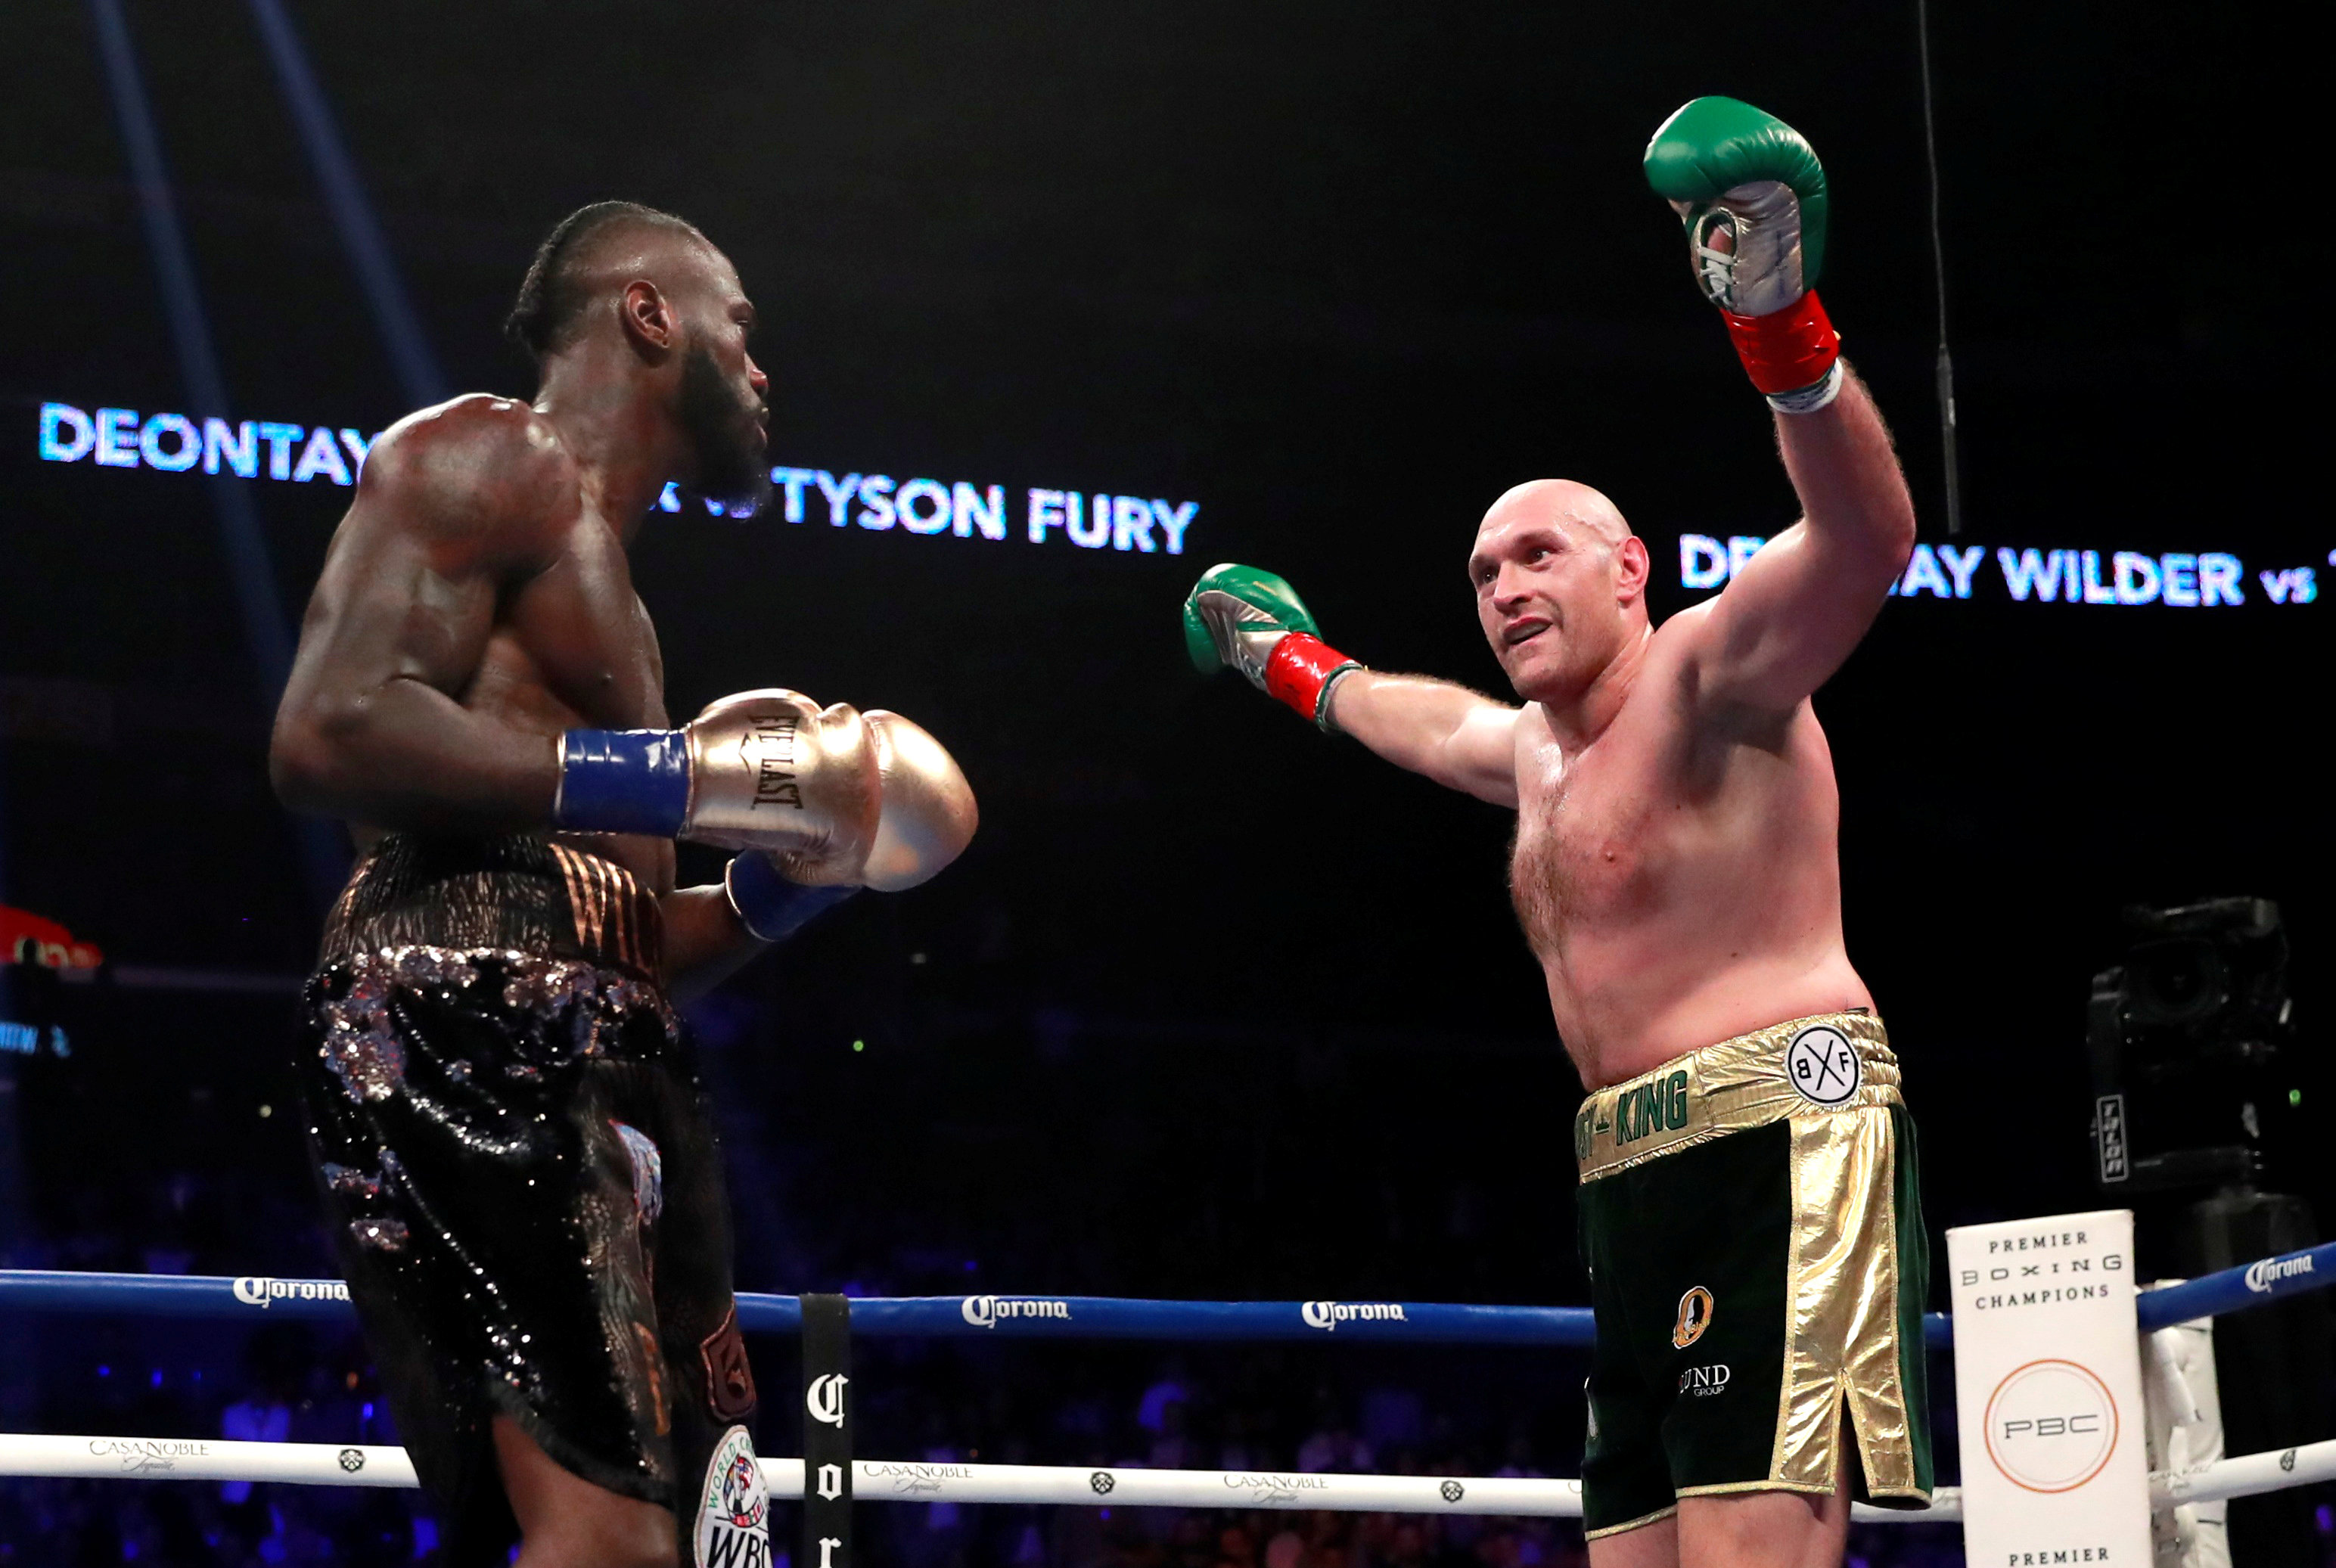 Deontay Wilder v Tyson Fury - WBC World Heavyweight Title